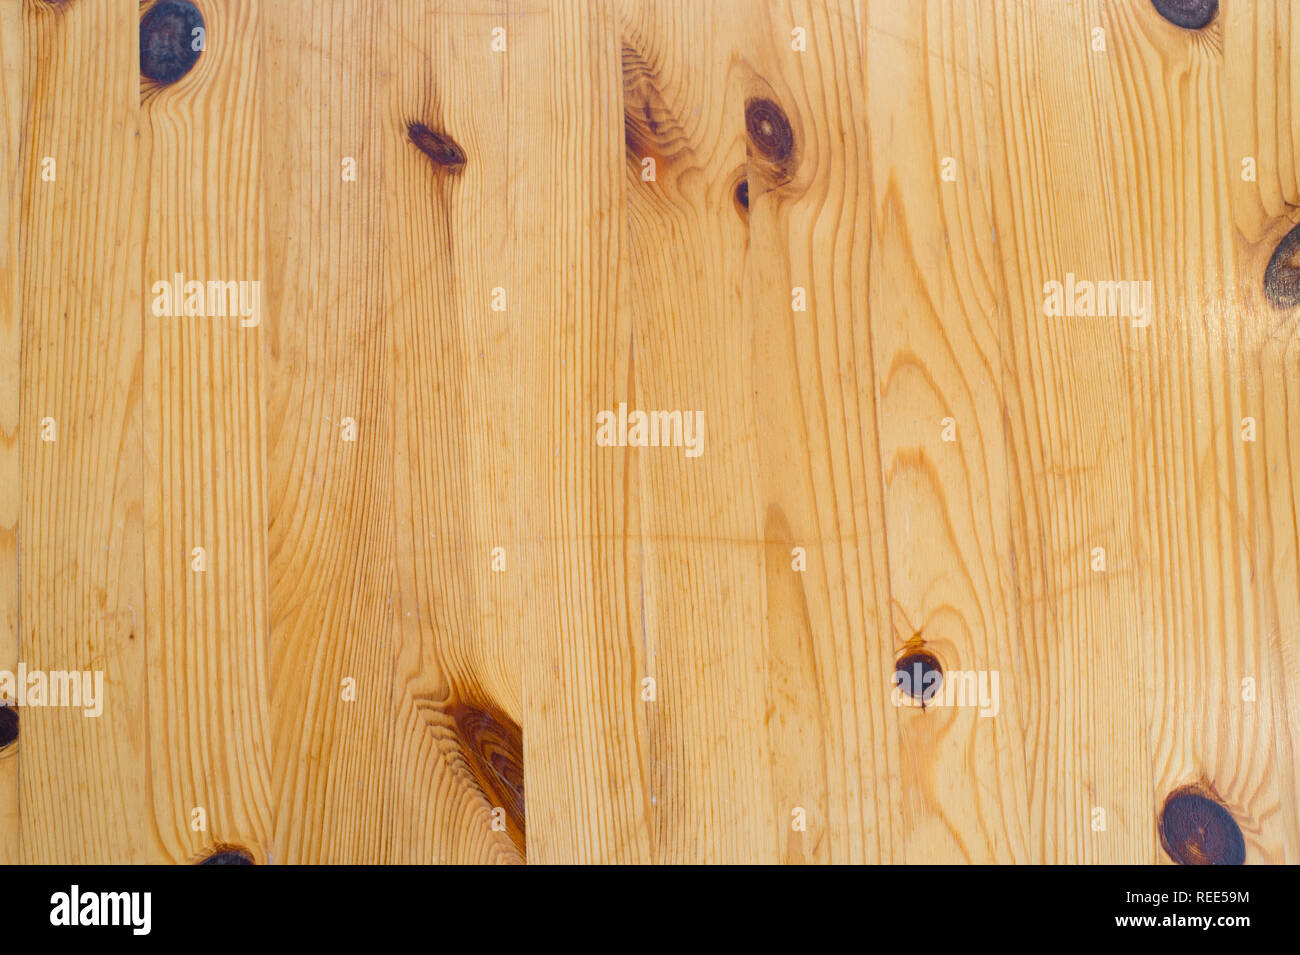 Wood planks background. Wood texture with natural pattern. Wooden board surface. Decor or design. Timber wall for copy space. - Stock Image